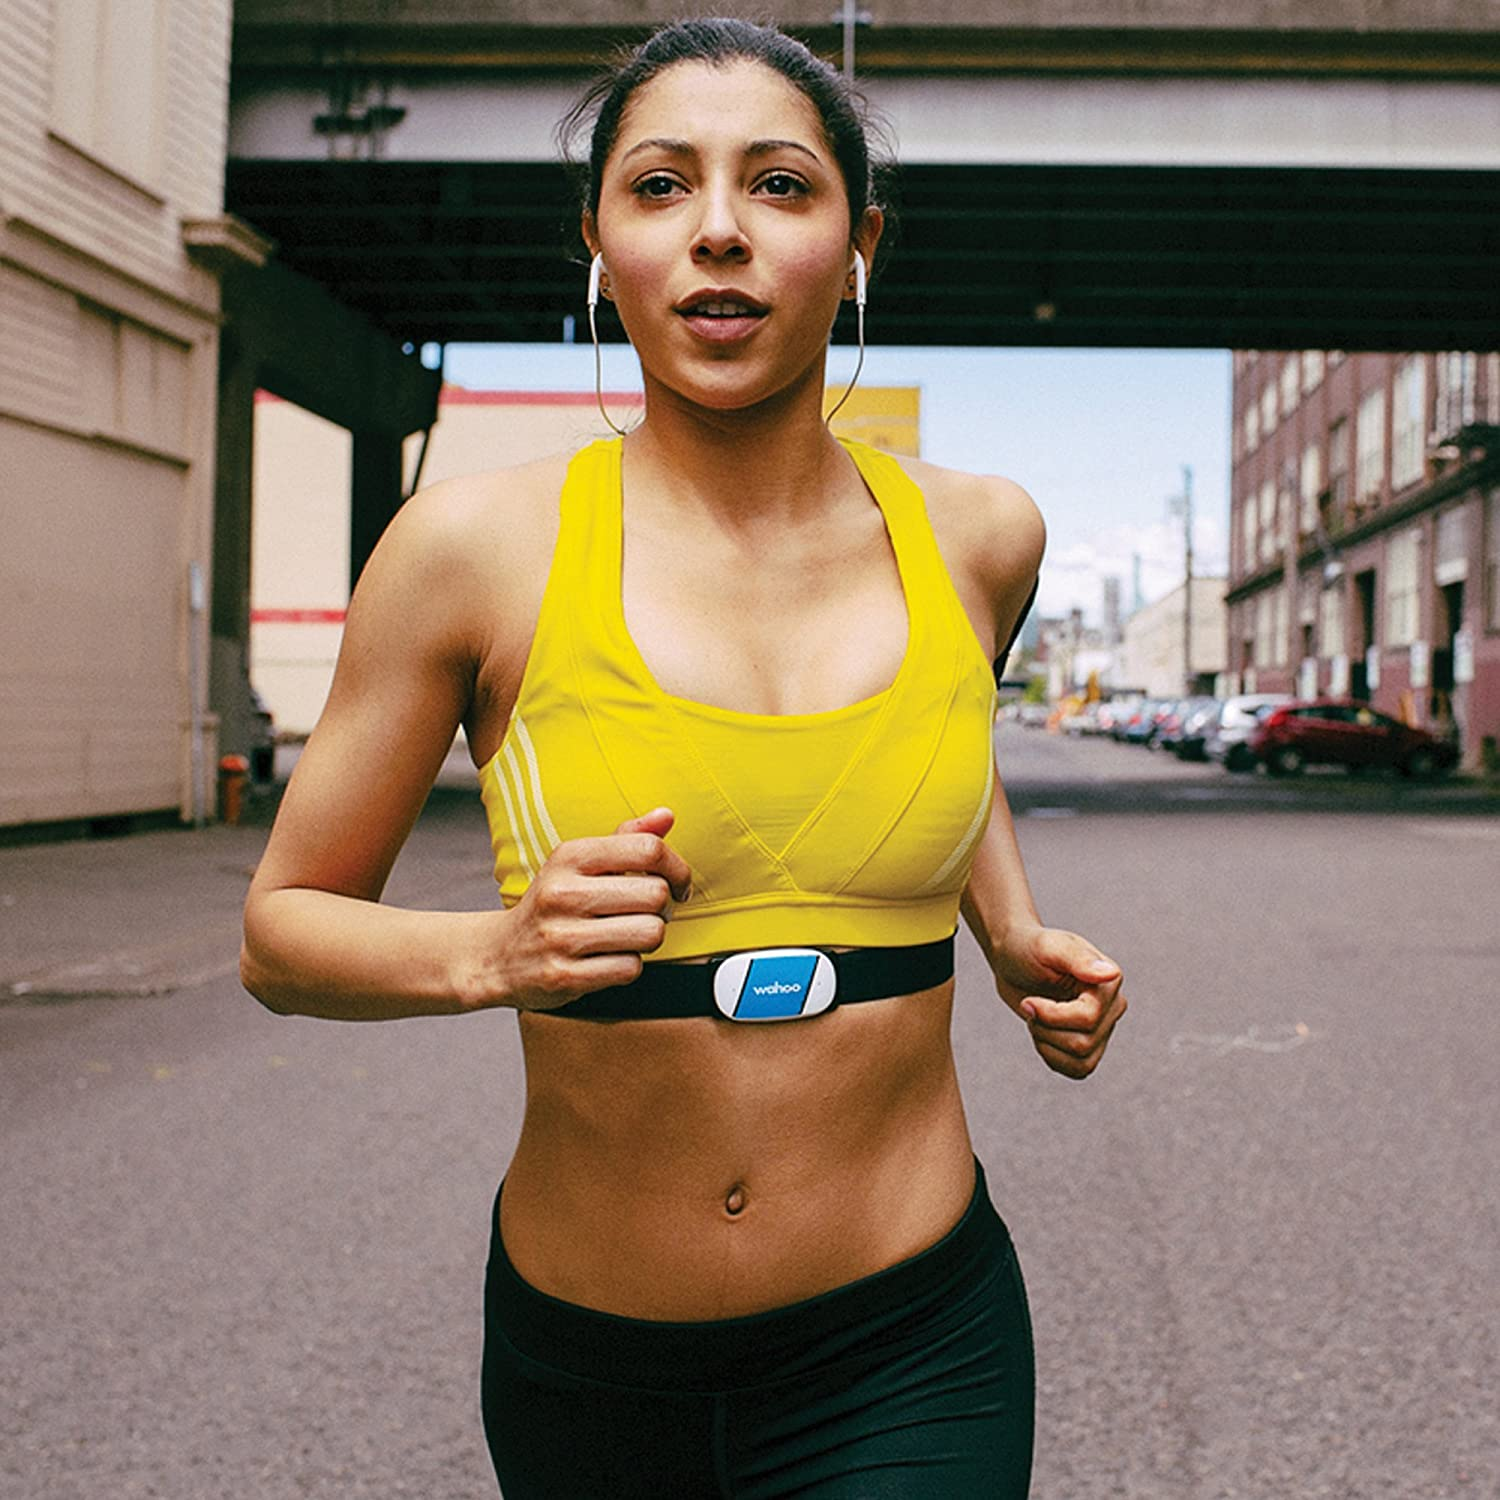 Wahoo Tickr Heart Rate Monitor Review